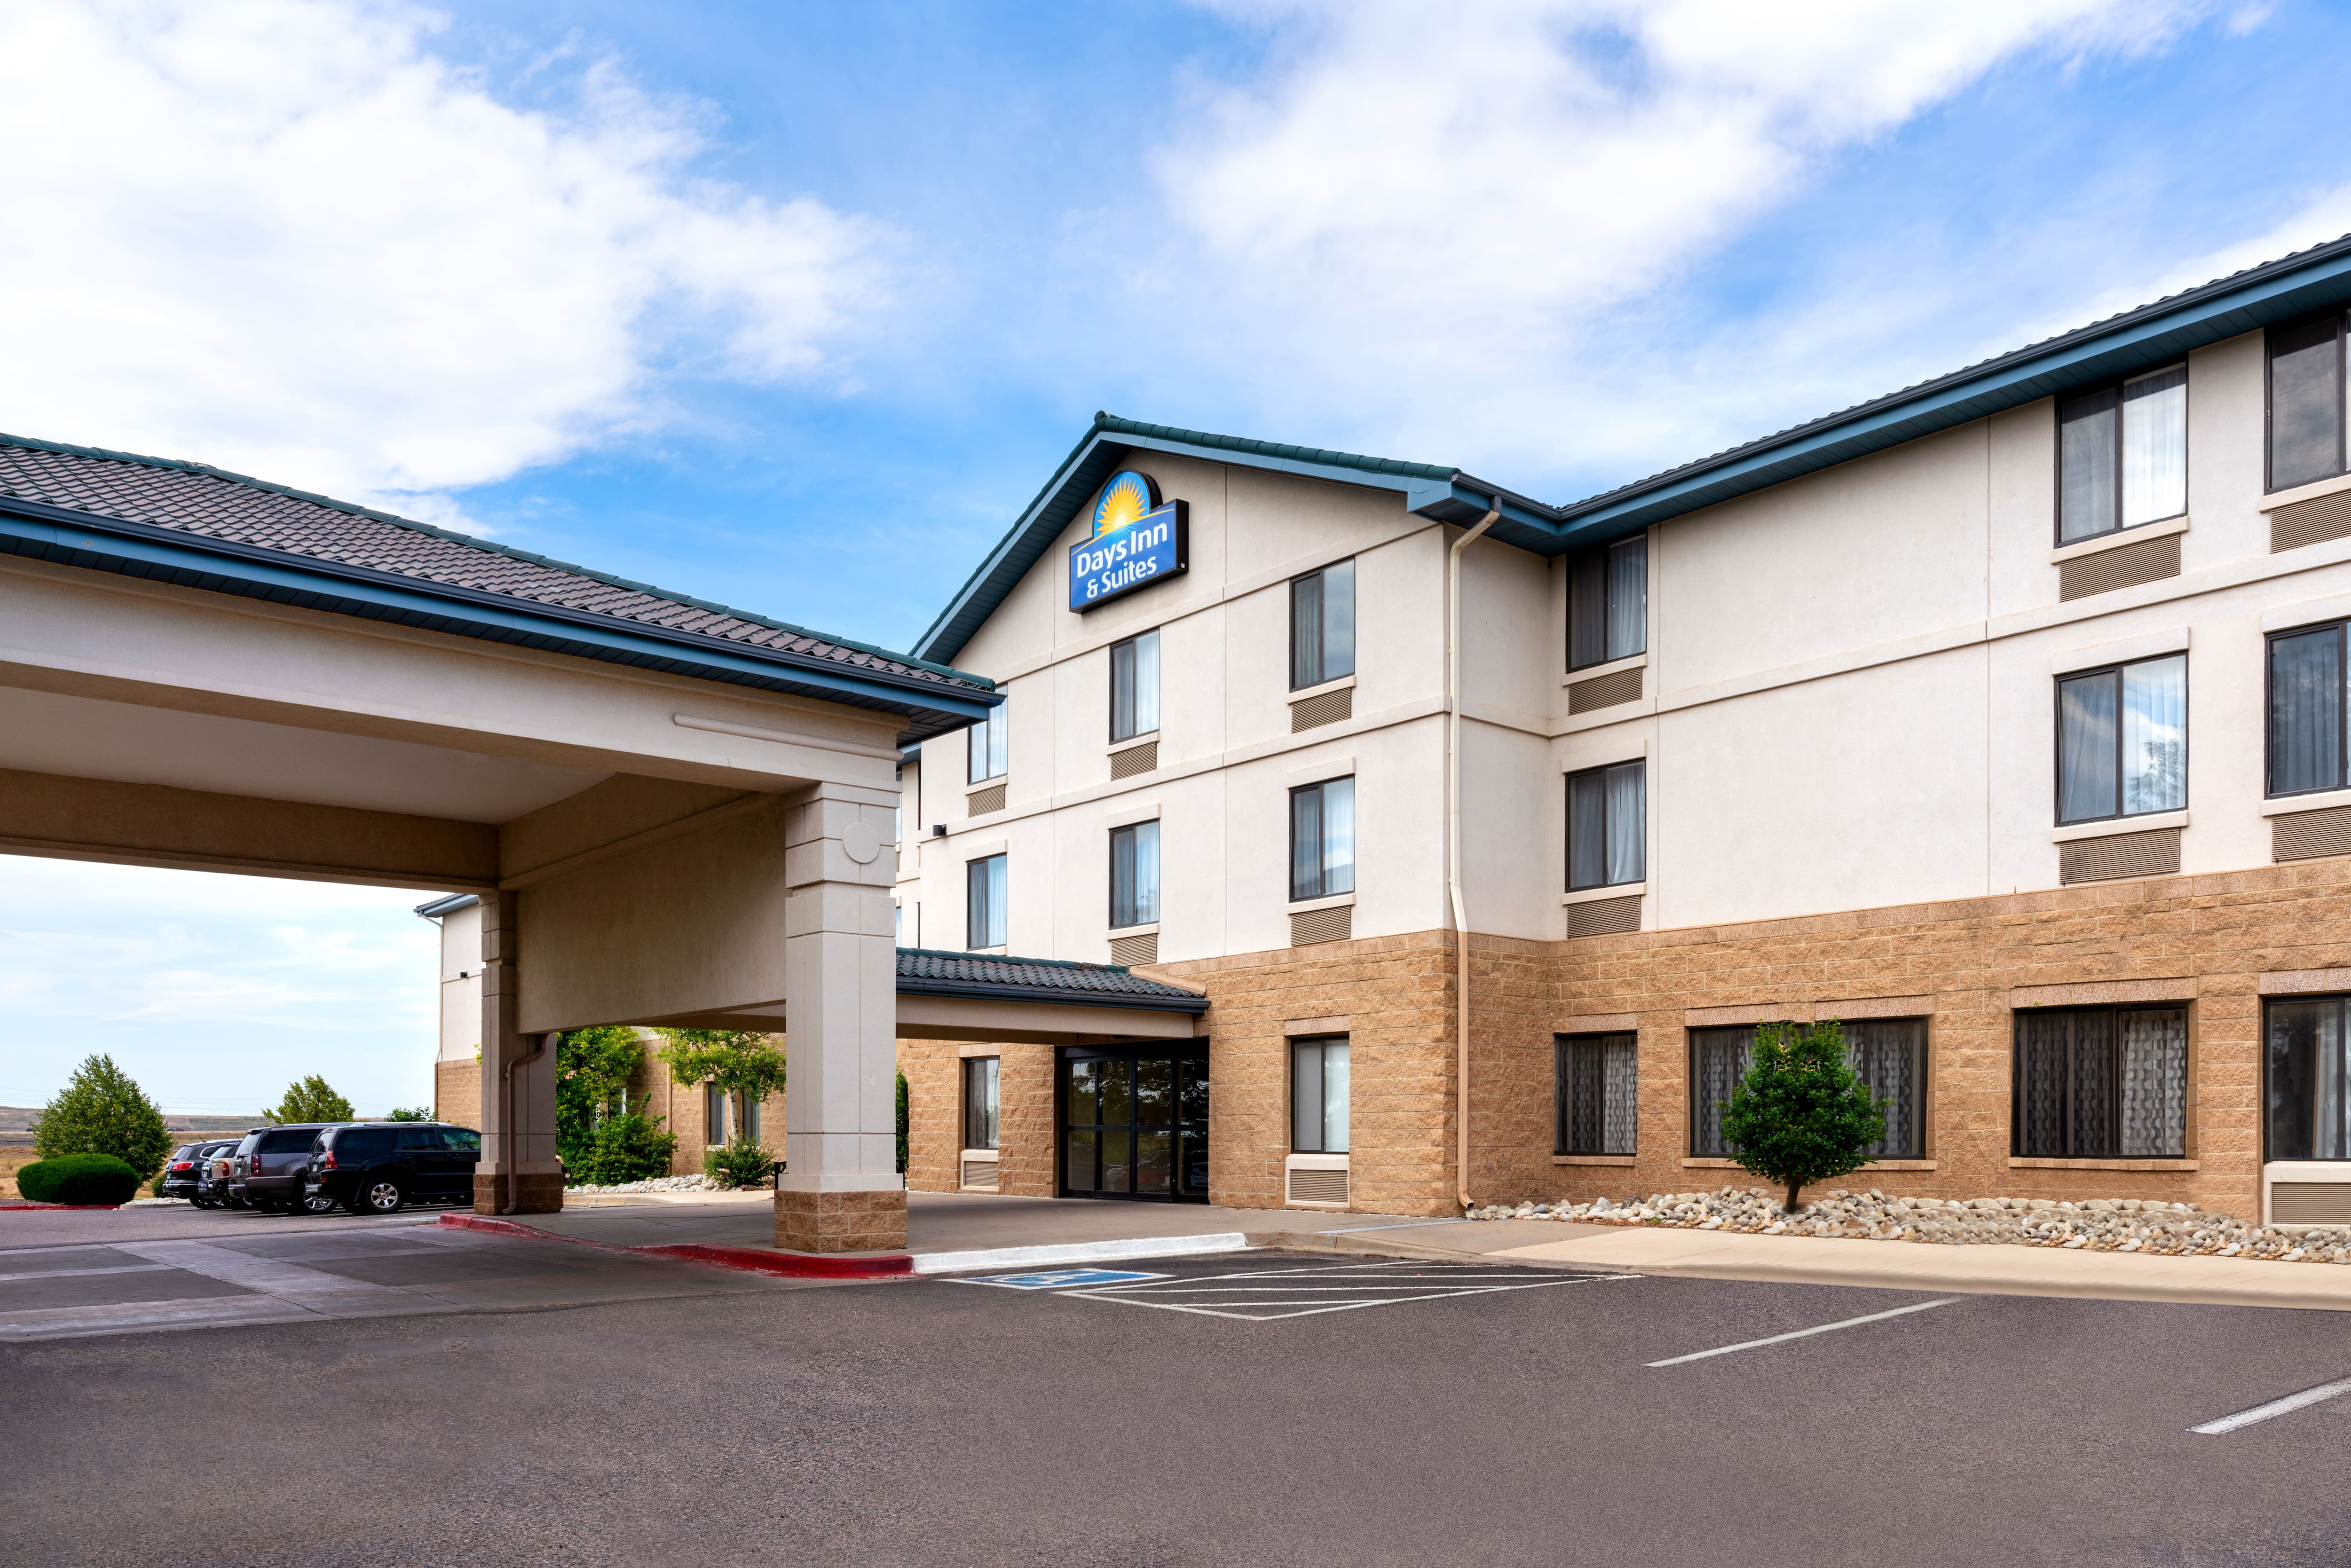 Days Inn Suites By Wyndham Denver International Airport Denver